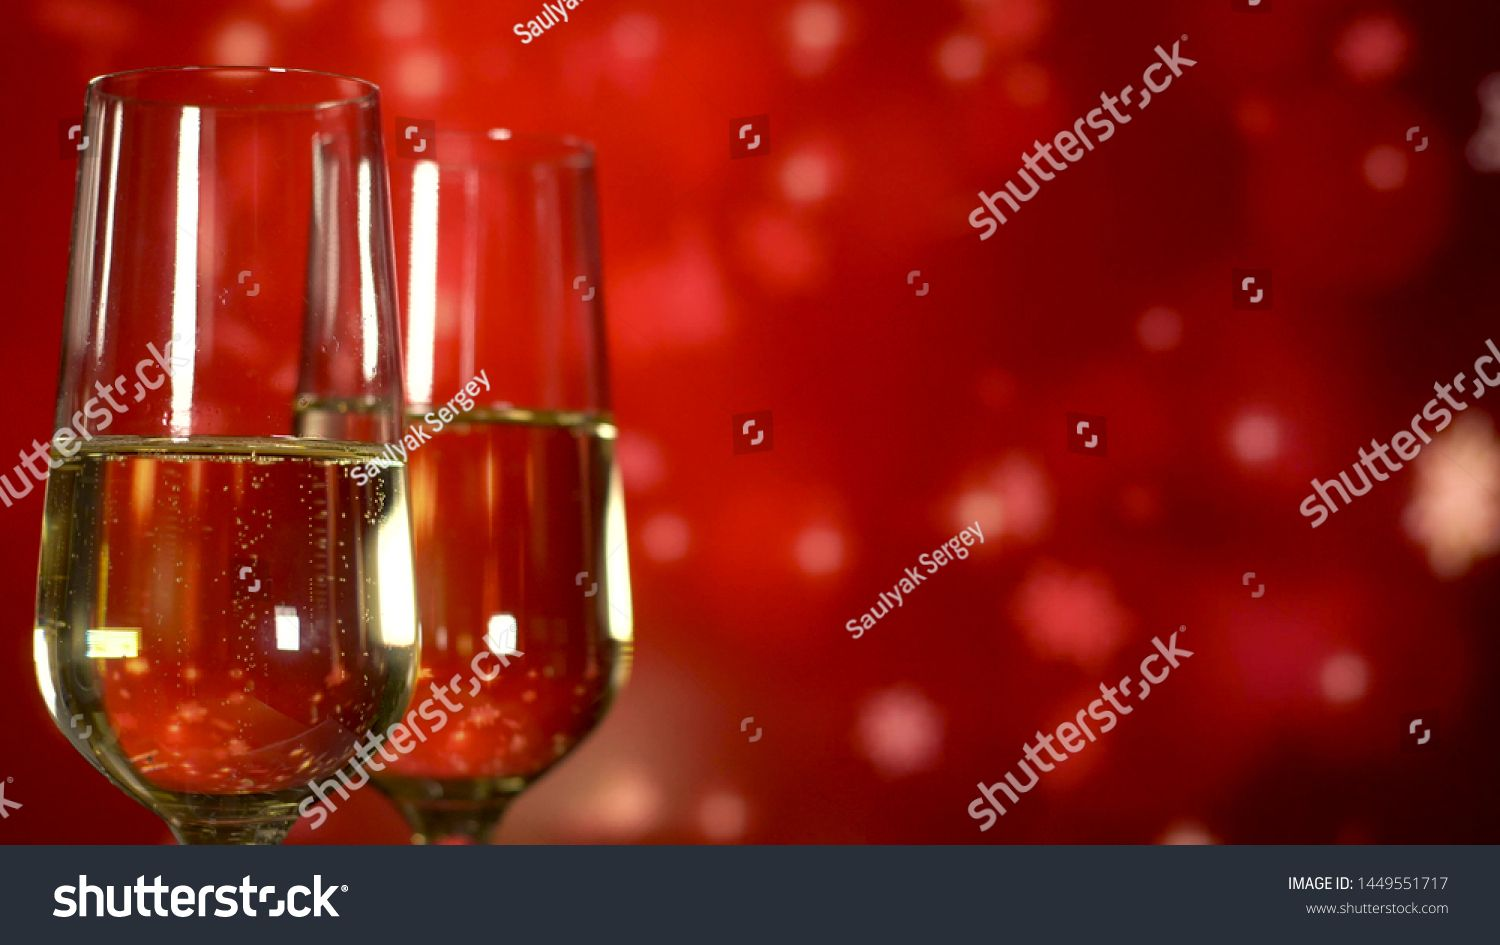 Two Glasses With Sparkling Champagne Over Red Holiday Background Close Up Ad Ad Champagne Sparkling Glasse In 2020 Holiday Background Champagne Alcoholic Drinks